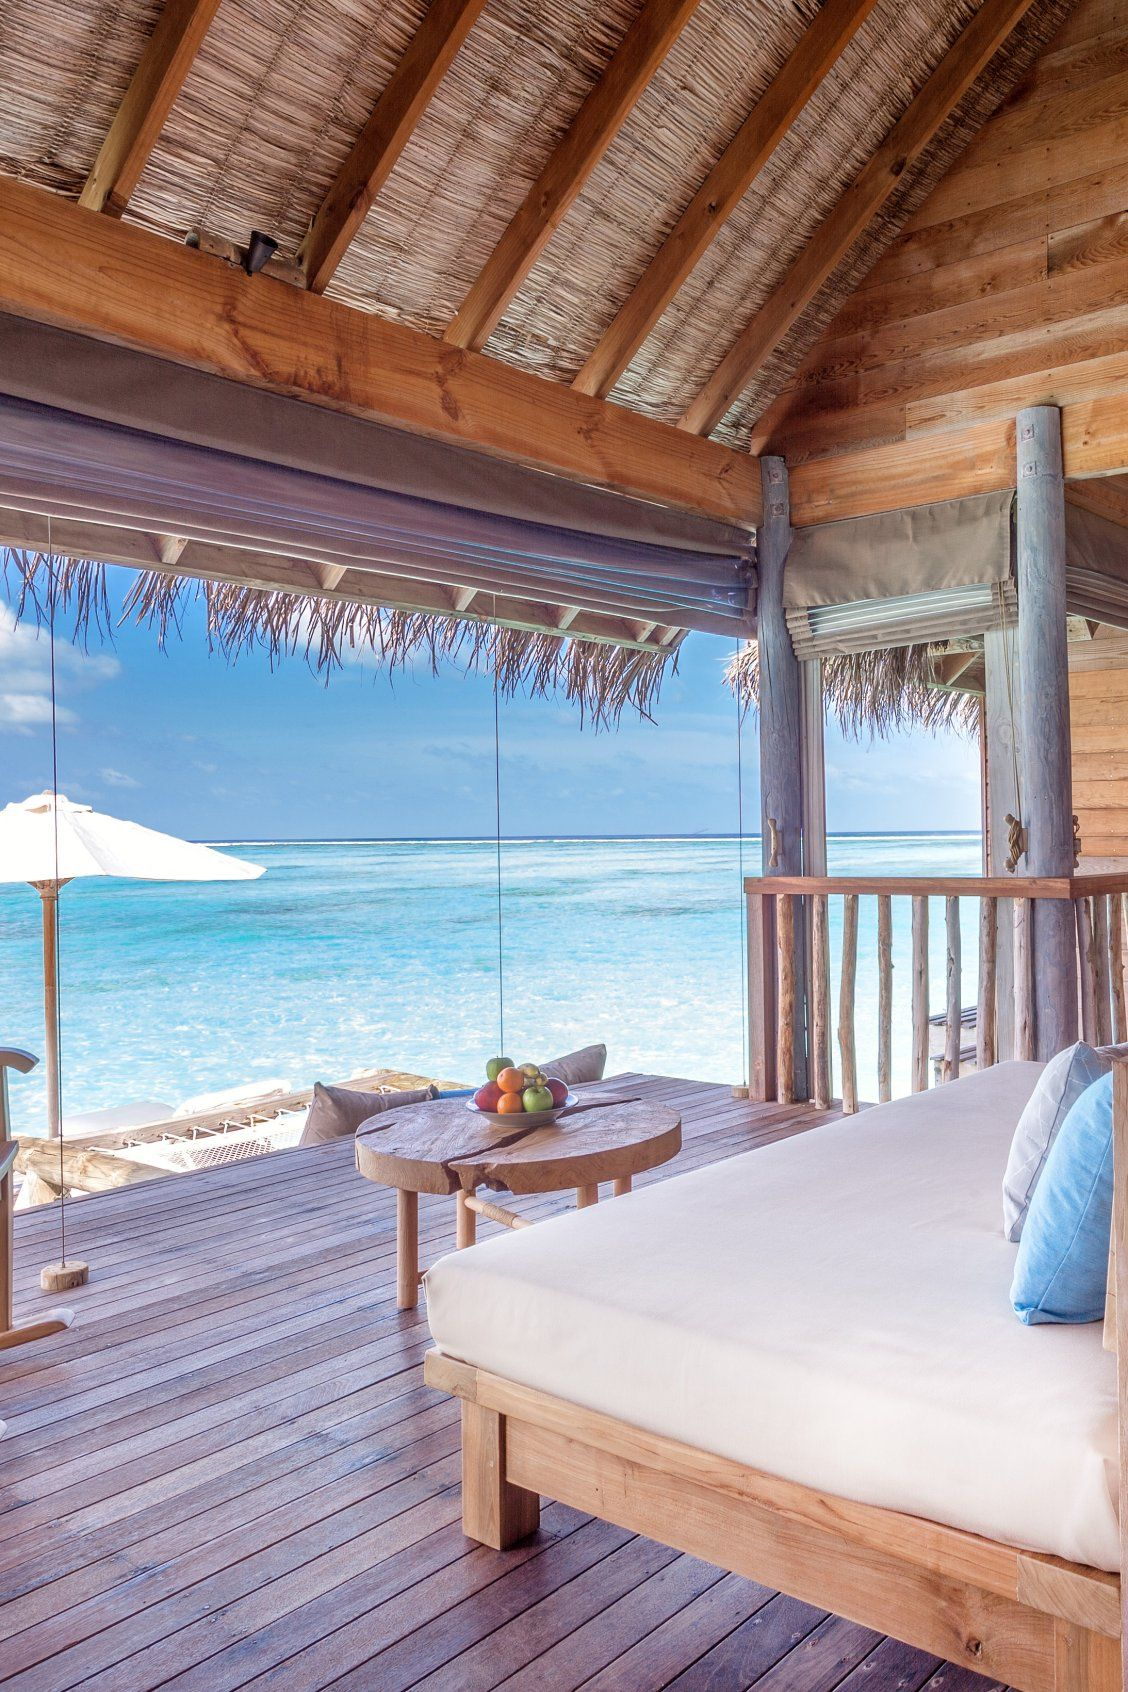 The Best All-Inclusive Beach Resorts in the World